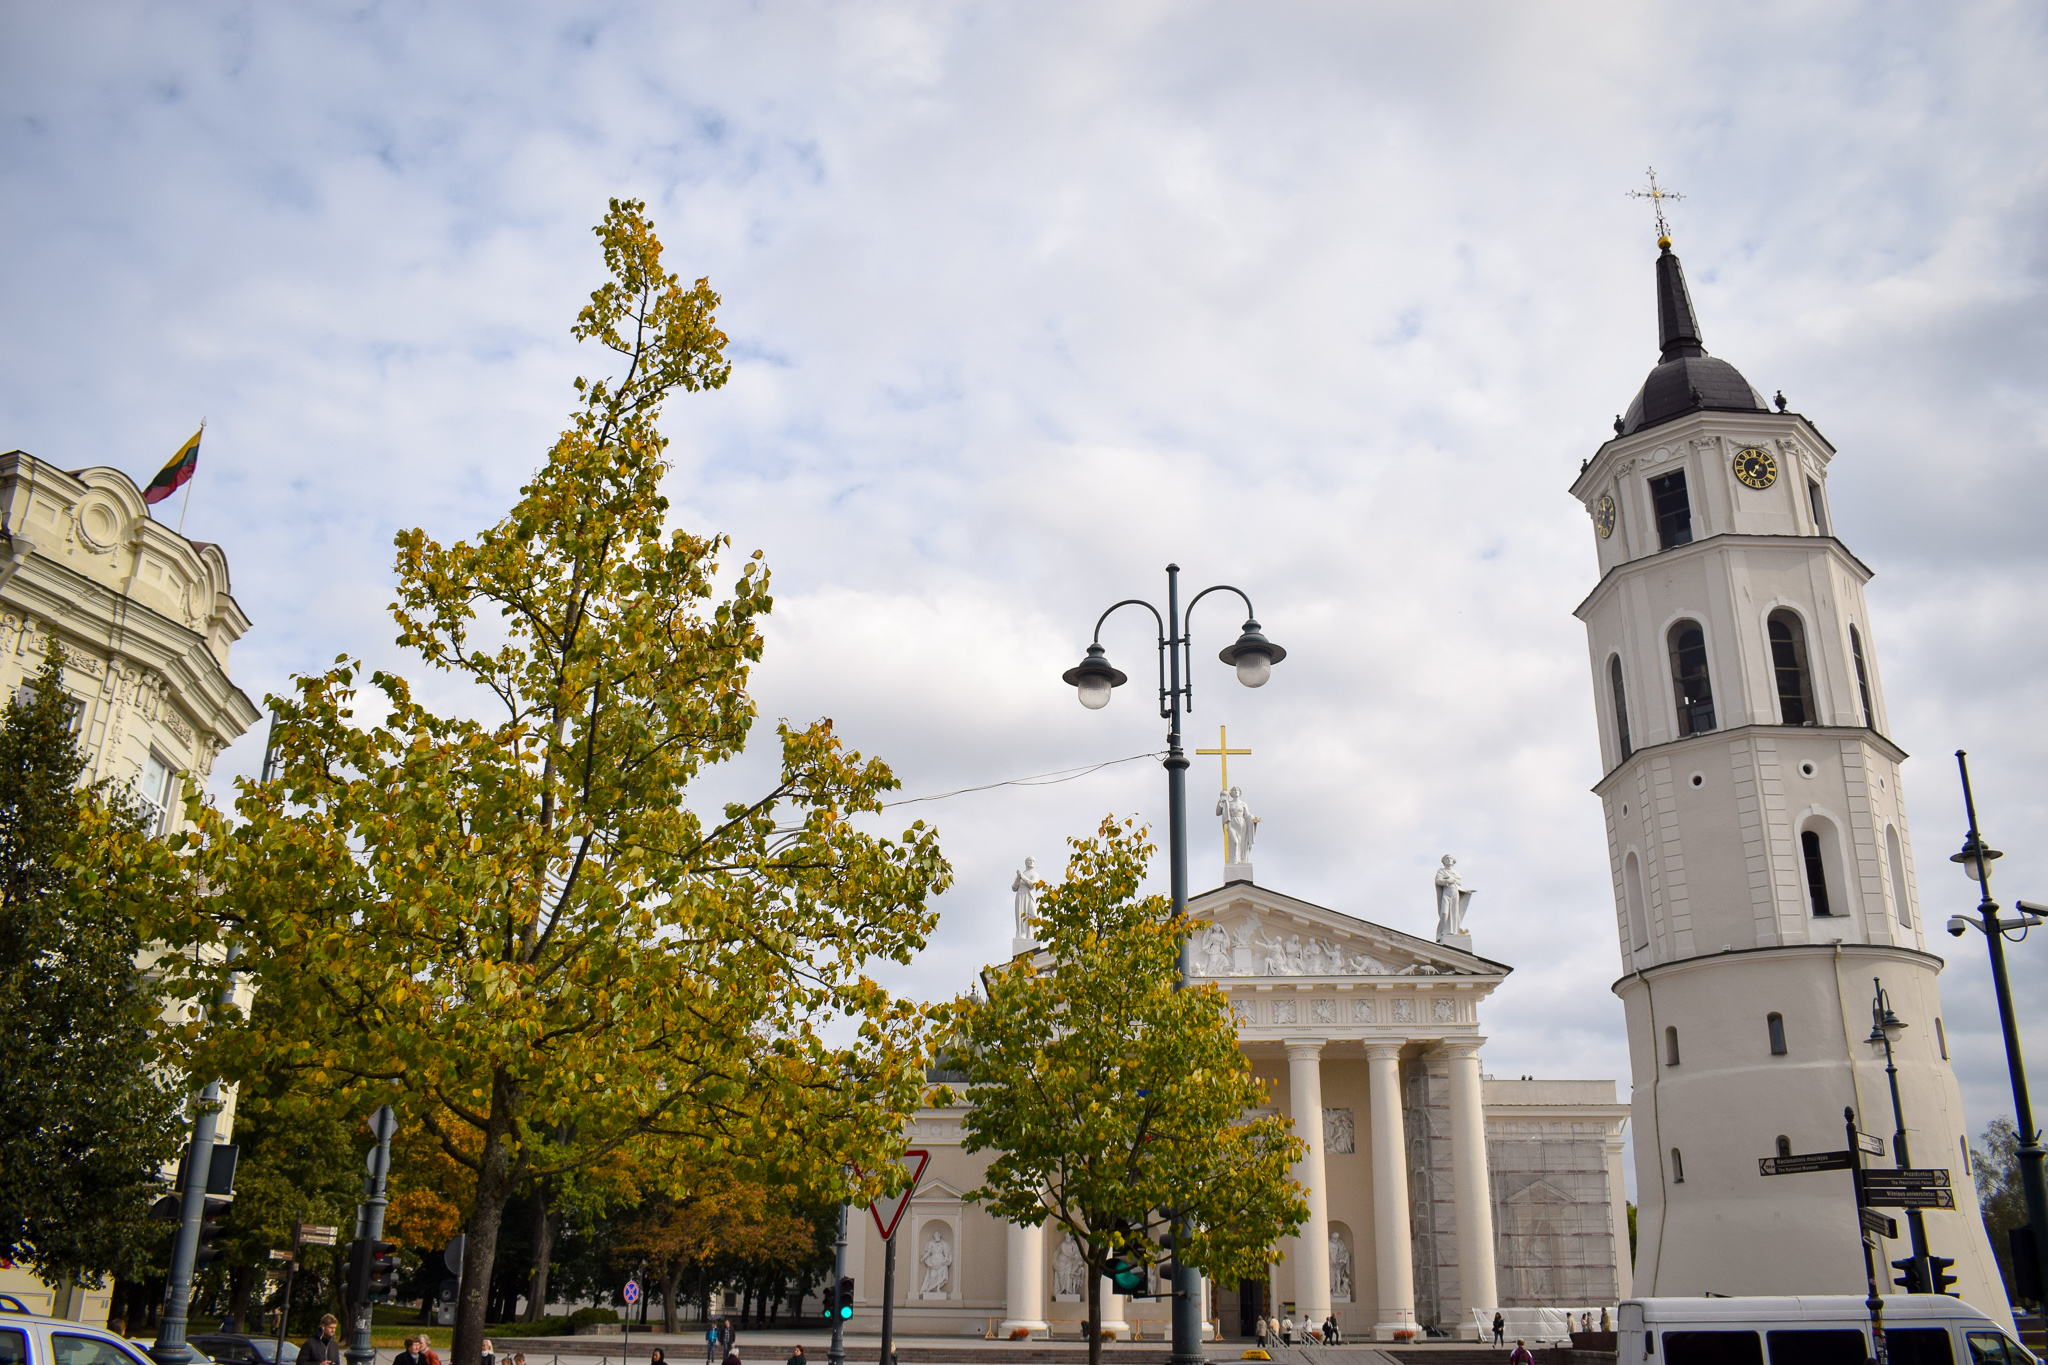 Vilnius Cathedral and Bell Tower - an example of the city's beutiful architecture.